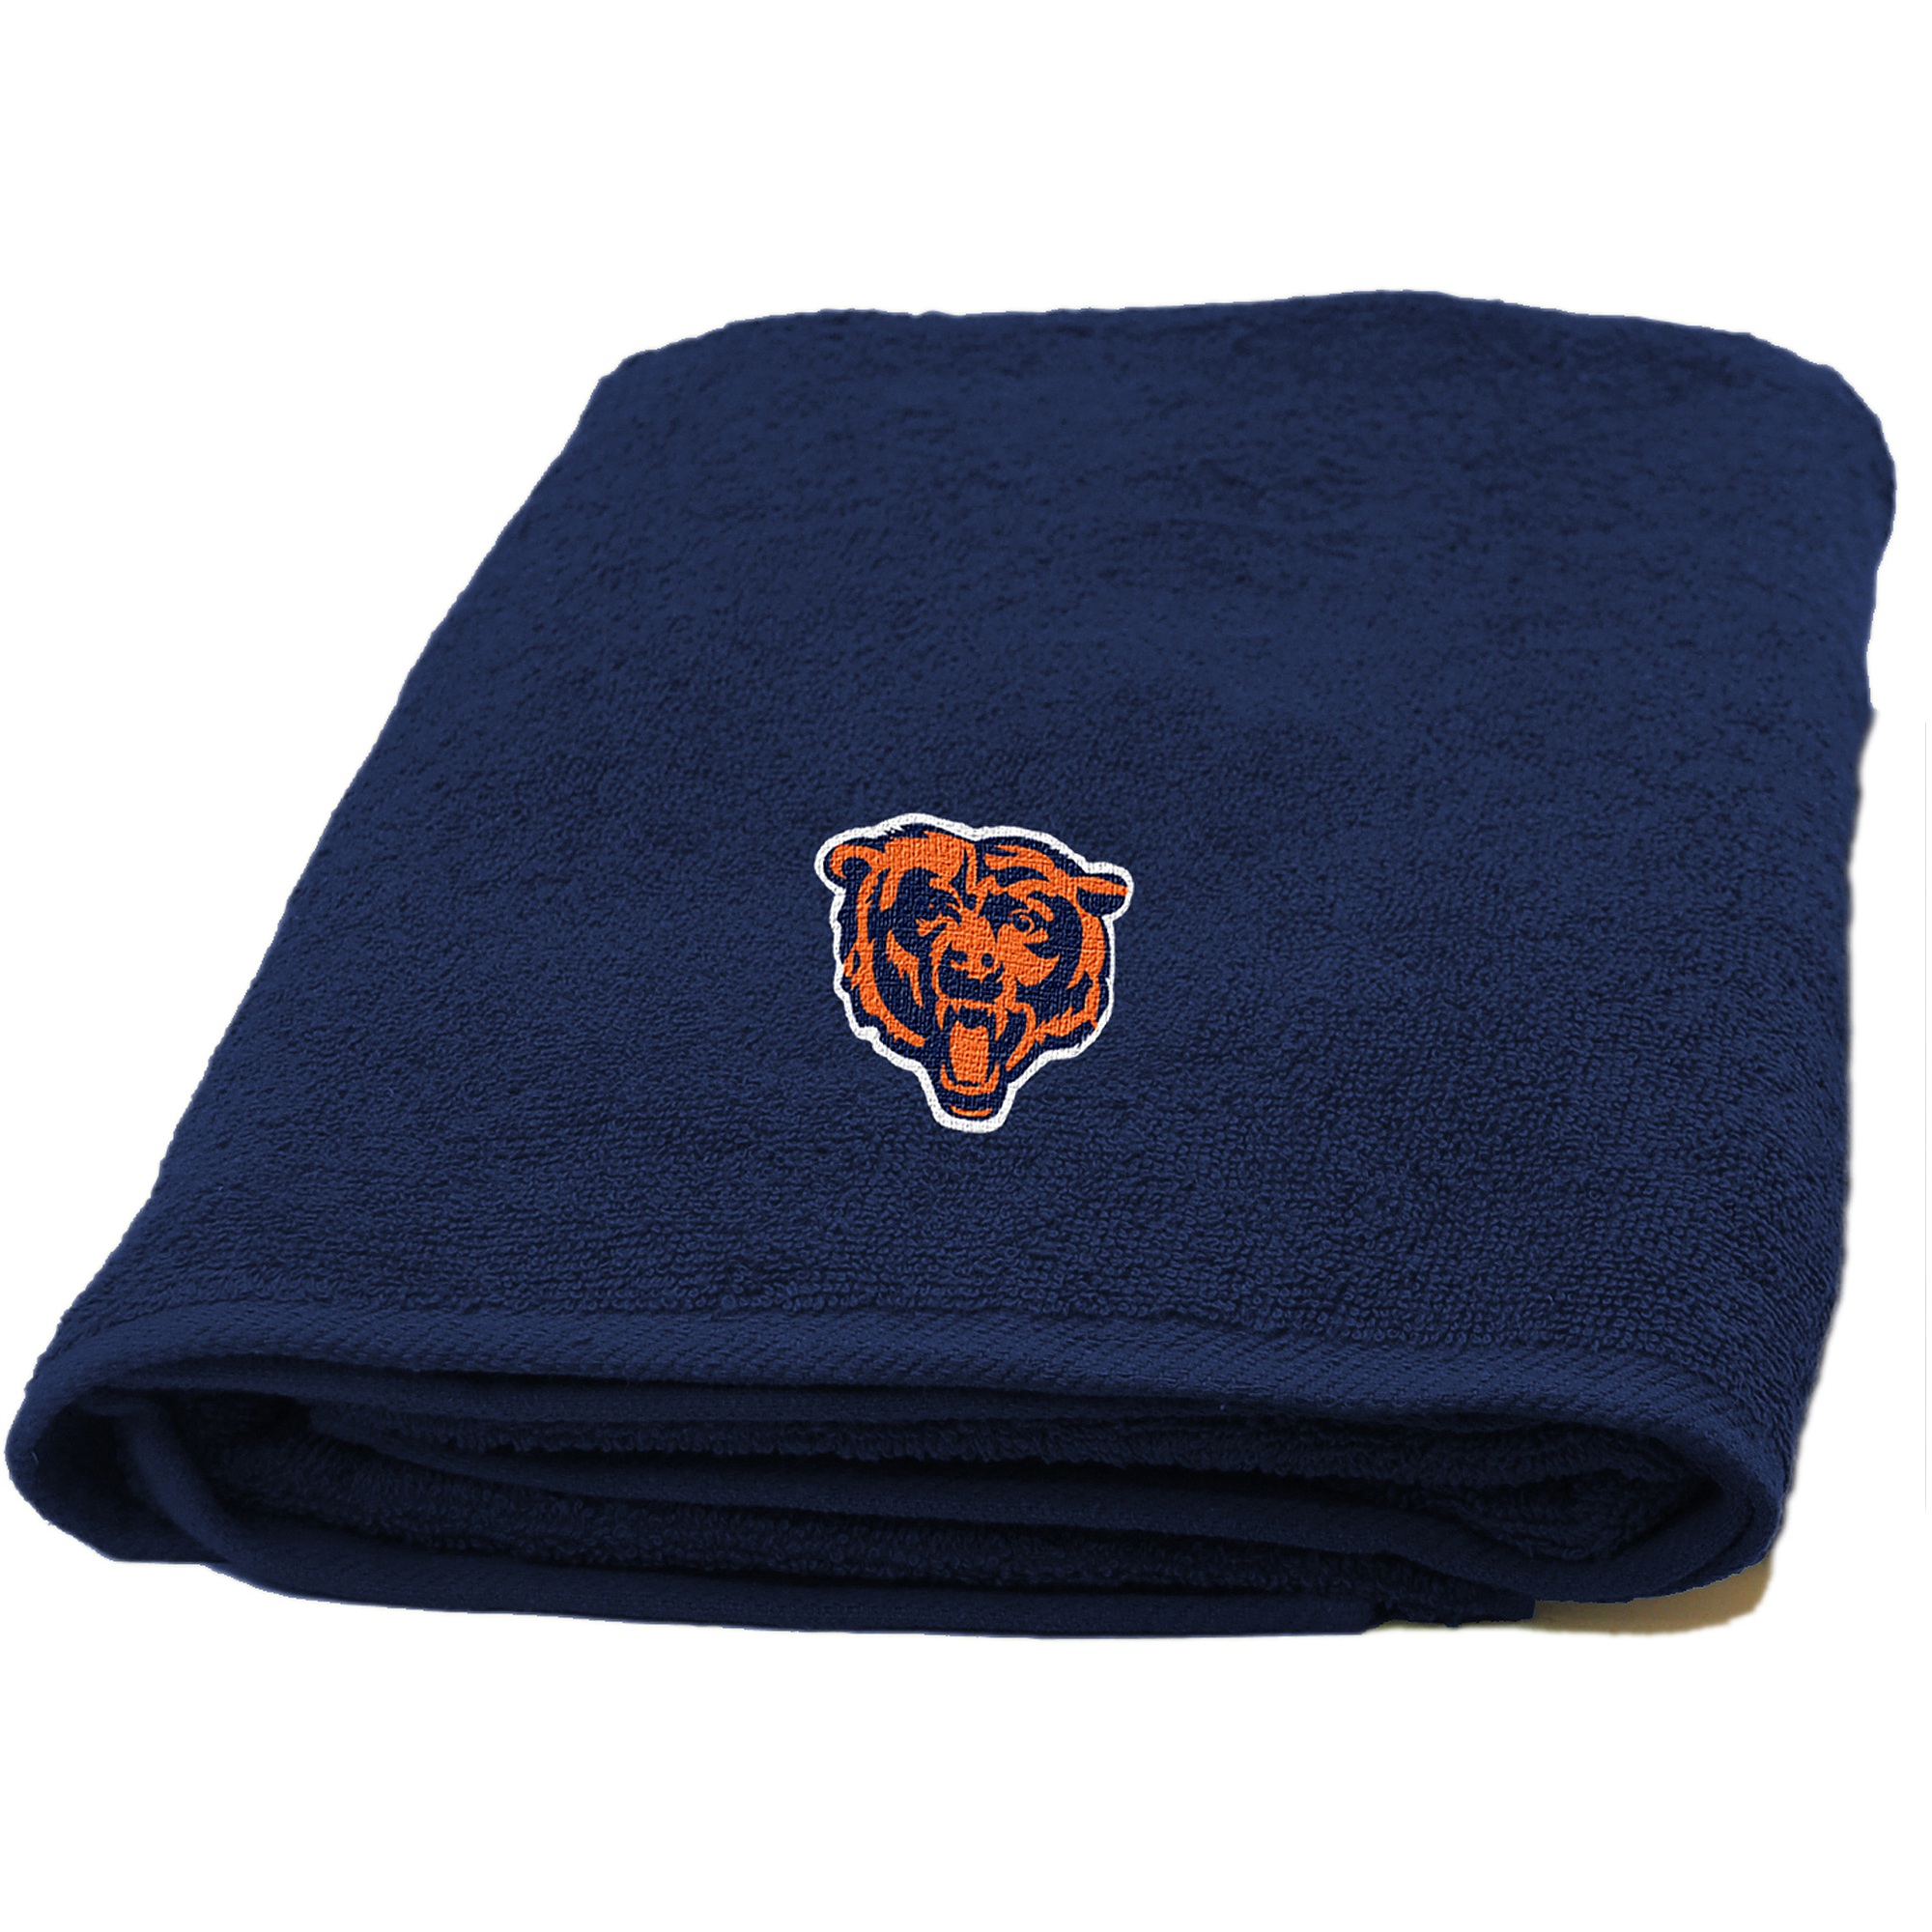 Chicago Bears - Fan Shop - Walmart.com